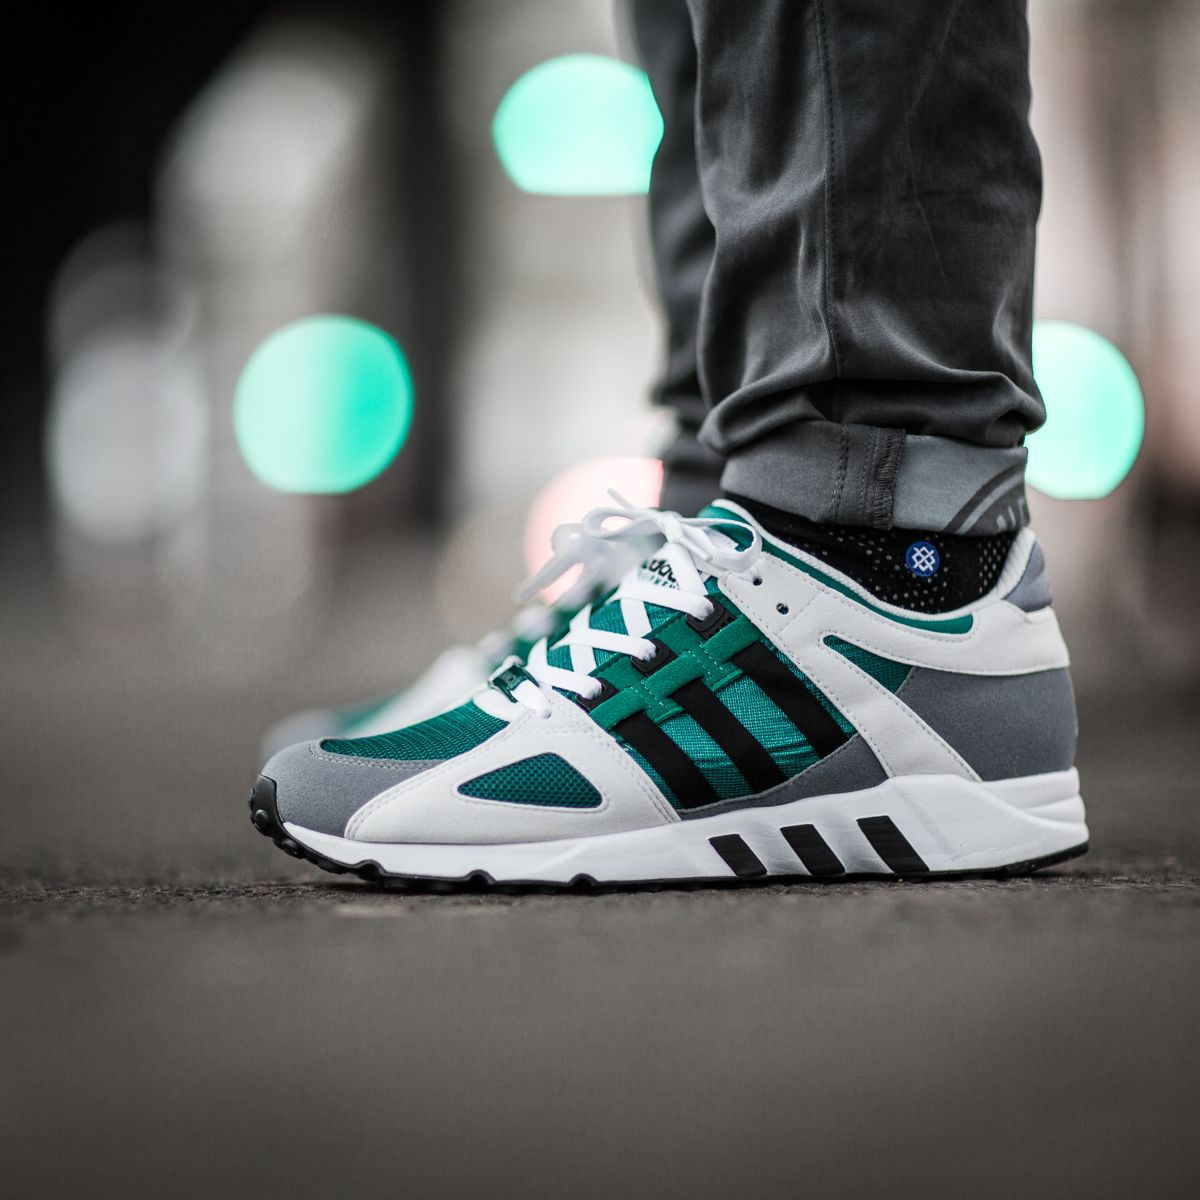 Adidas Eqt Running Guidance 93 Primeknit